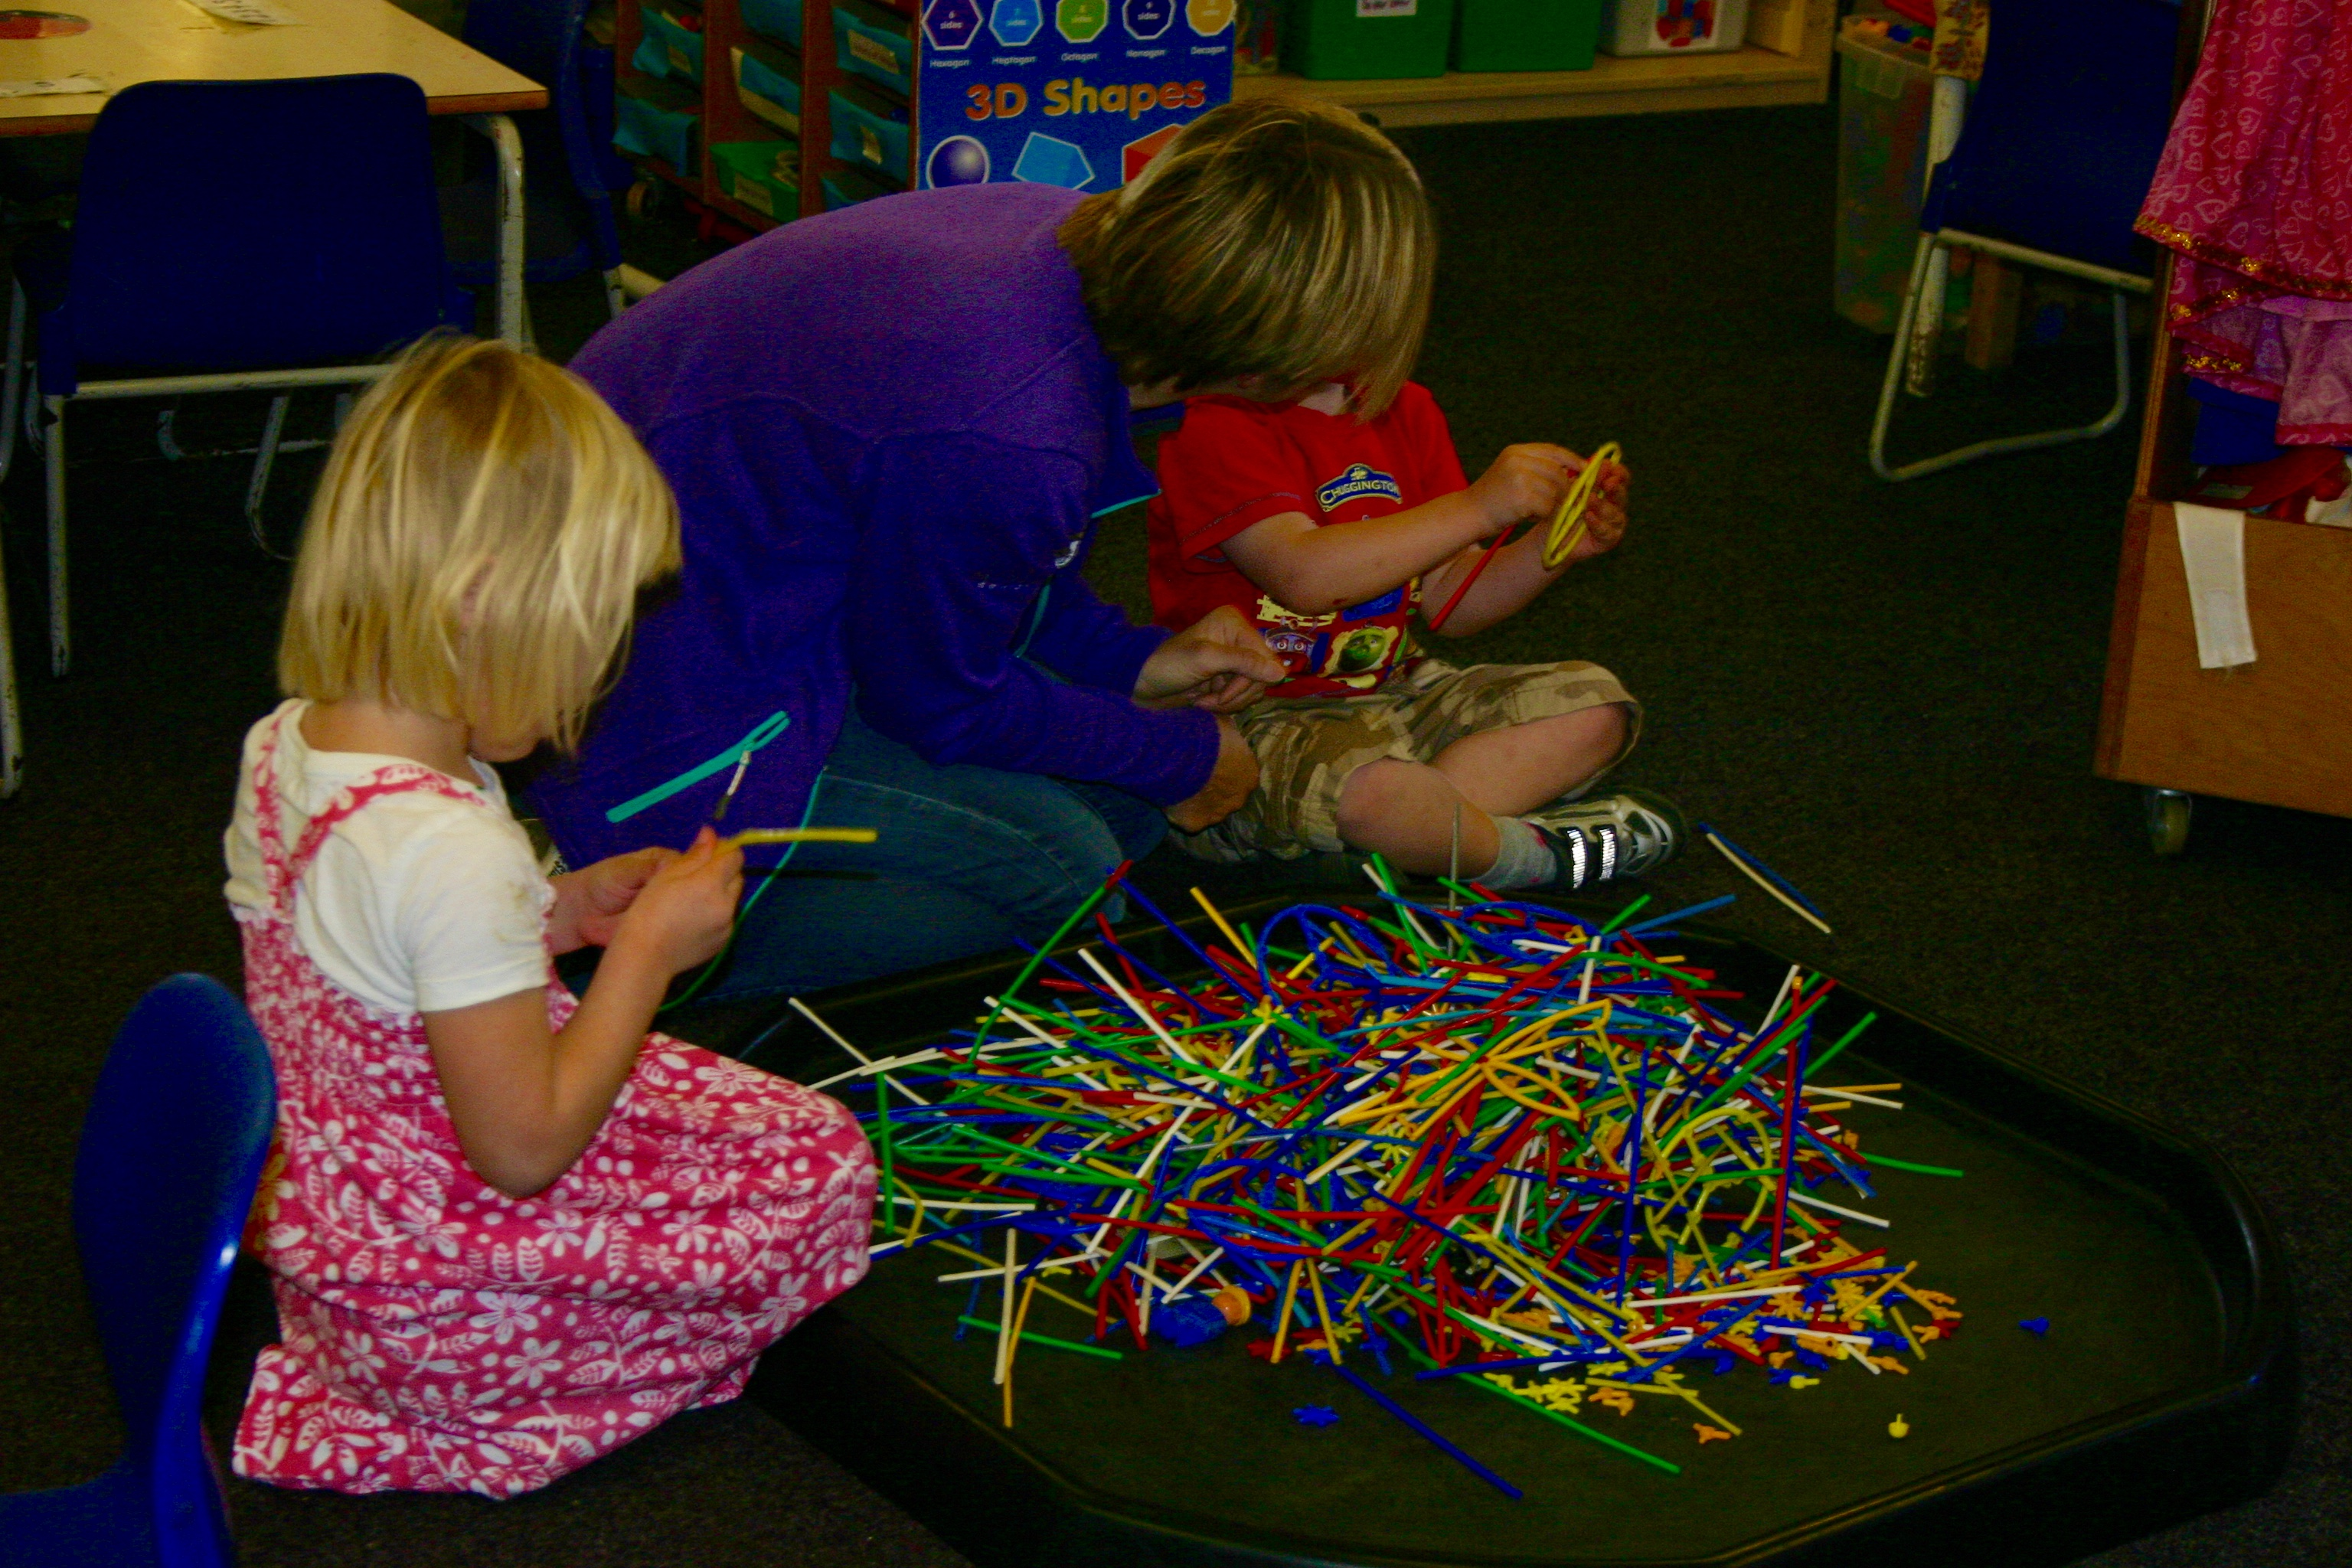 Construction with straws